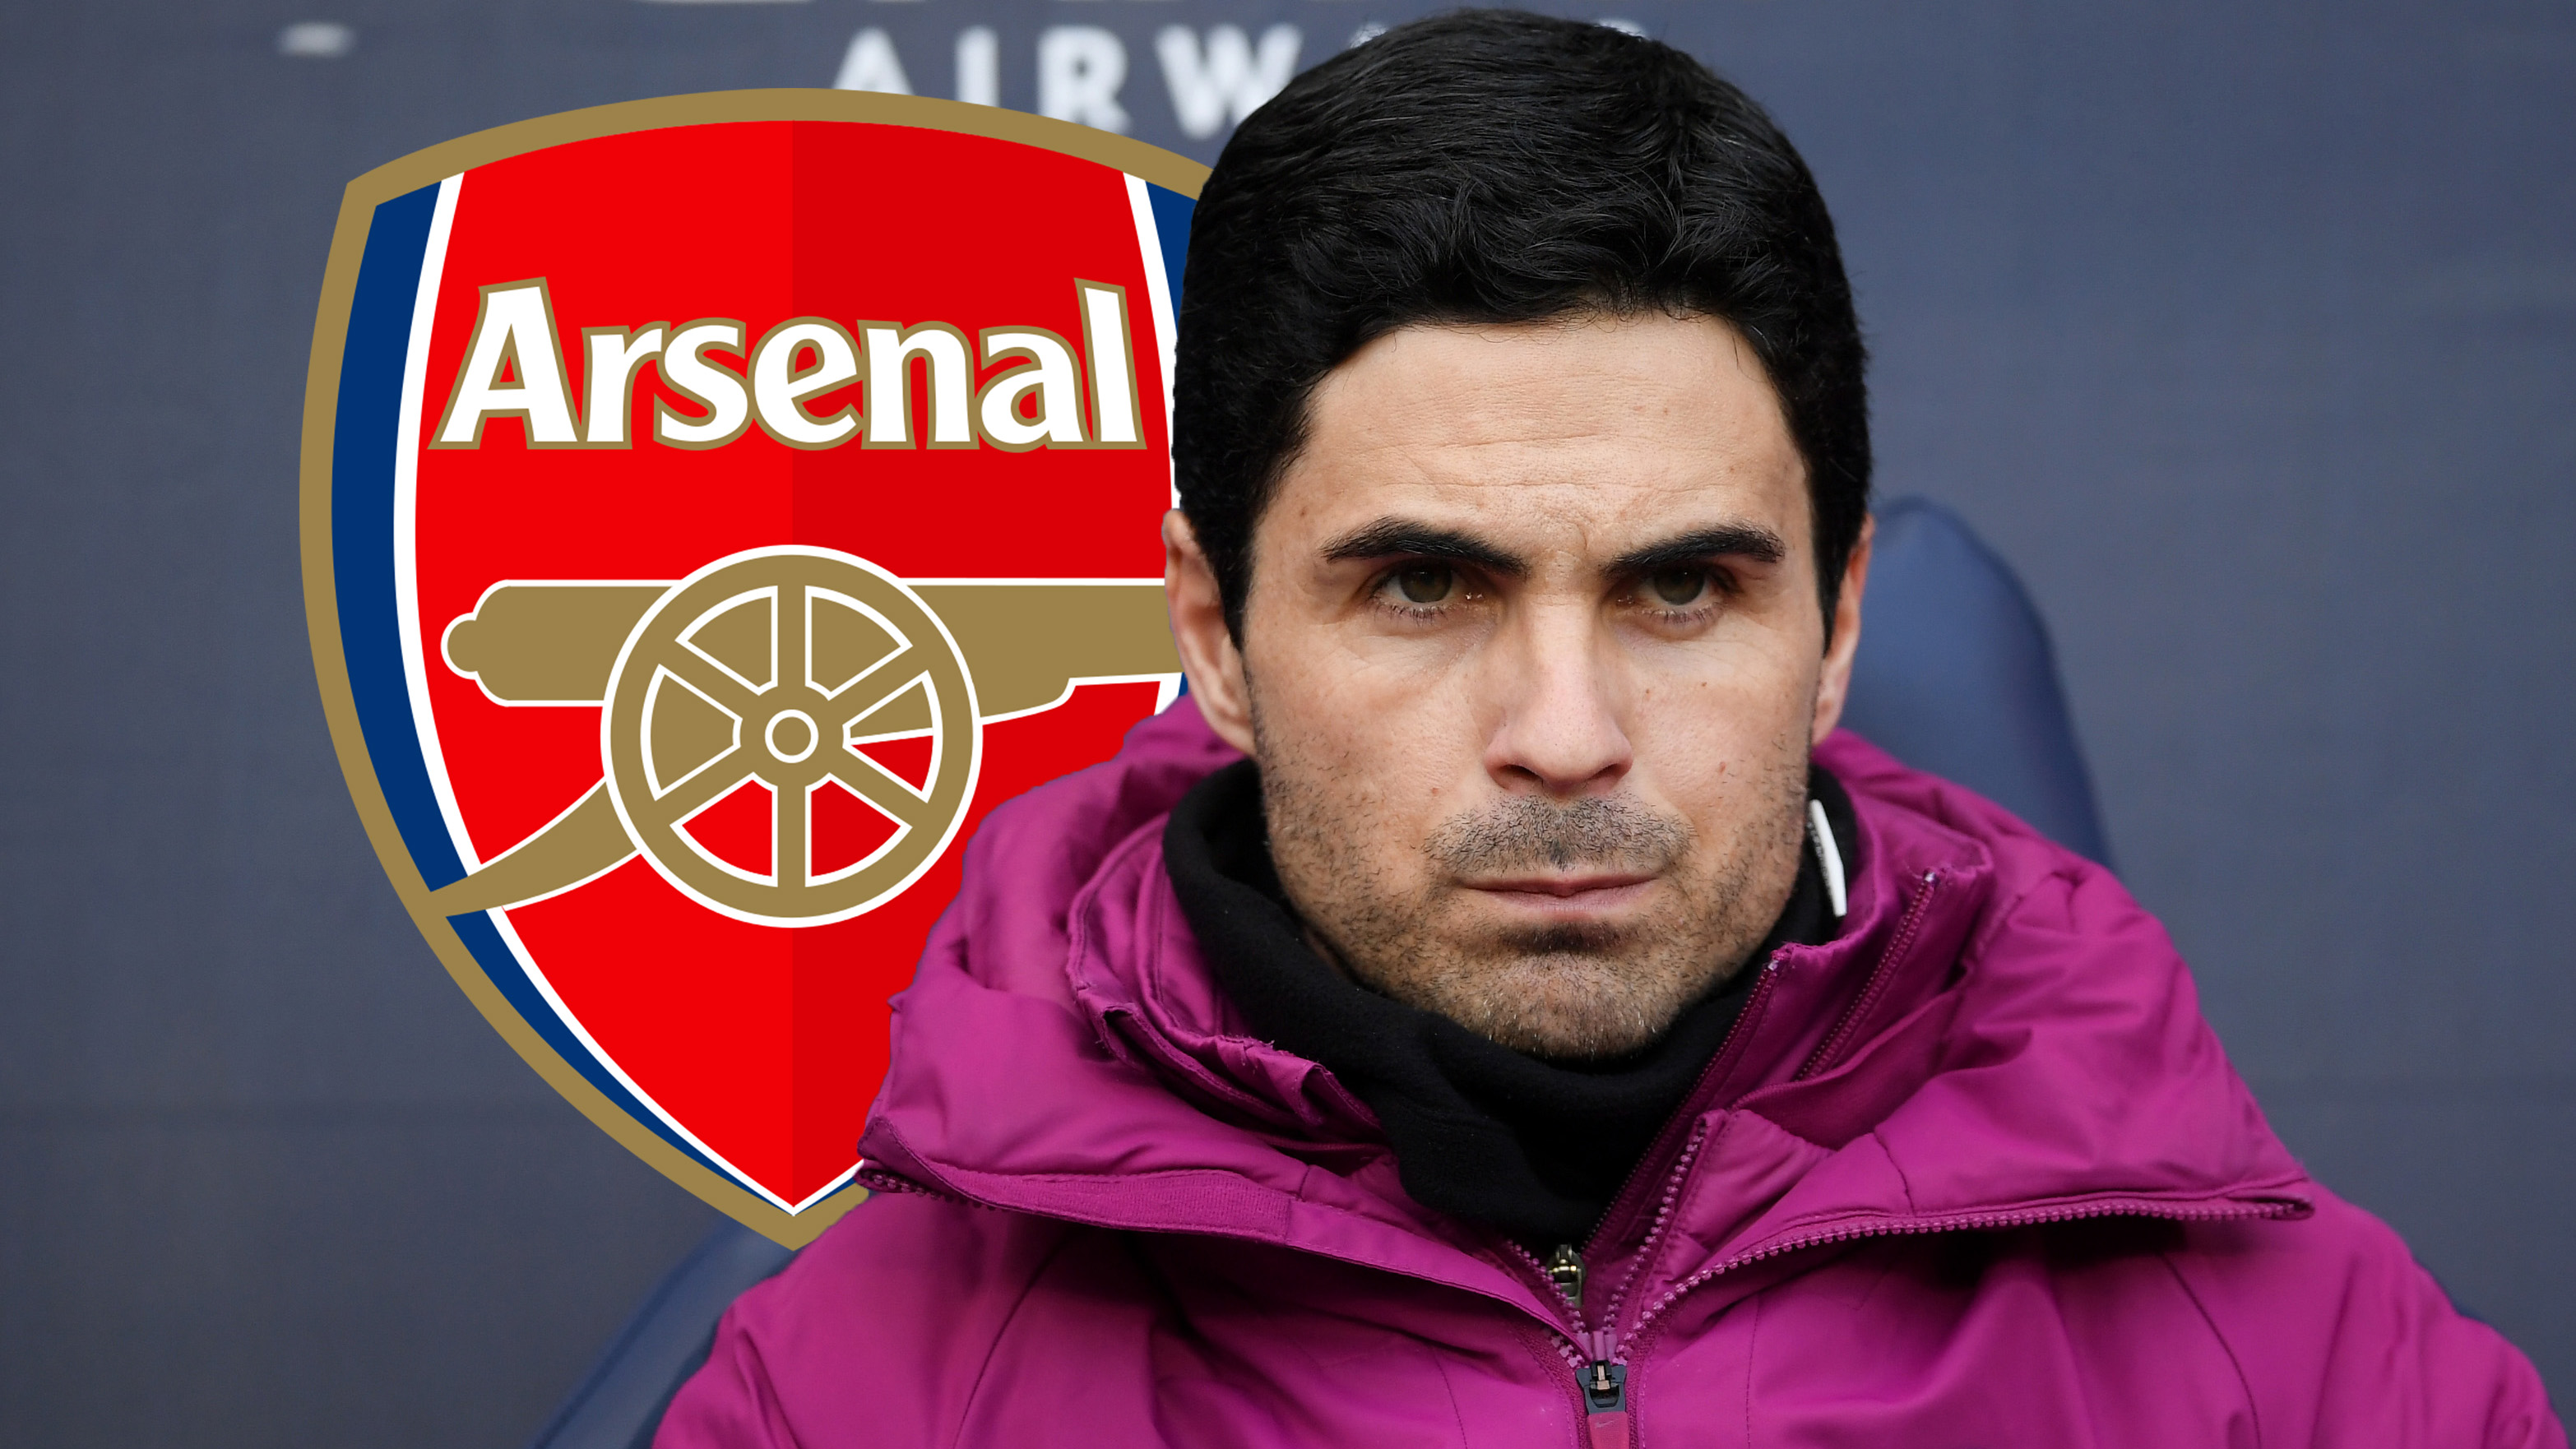 Lucas Torreira has a future at Arsenal - Unai Emery